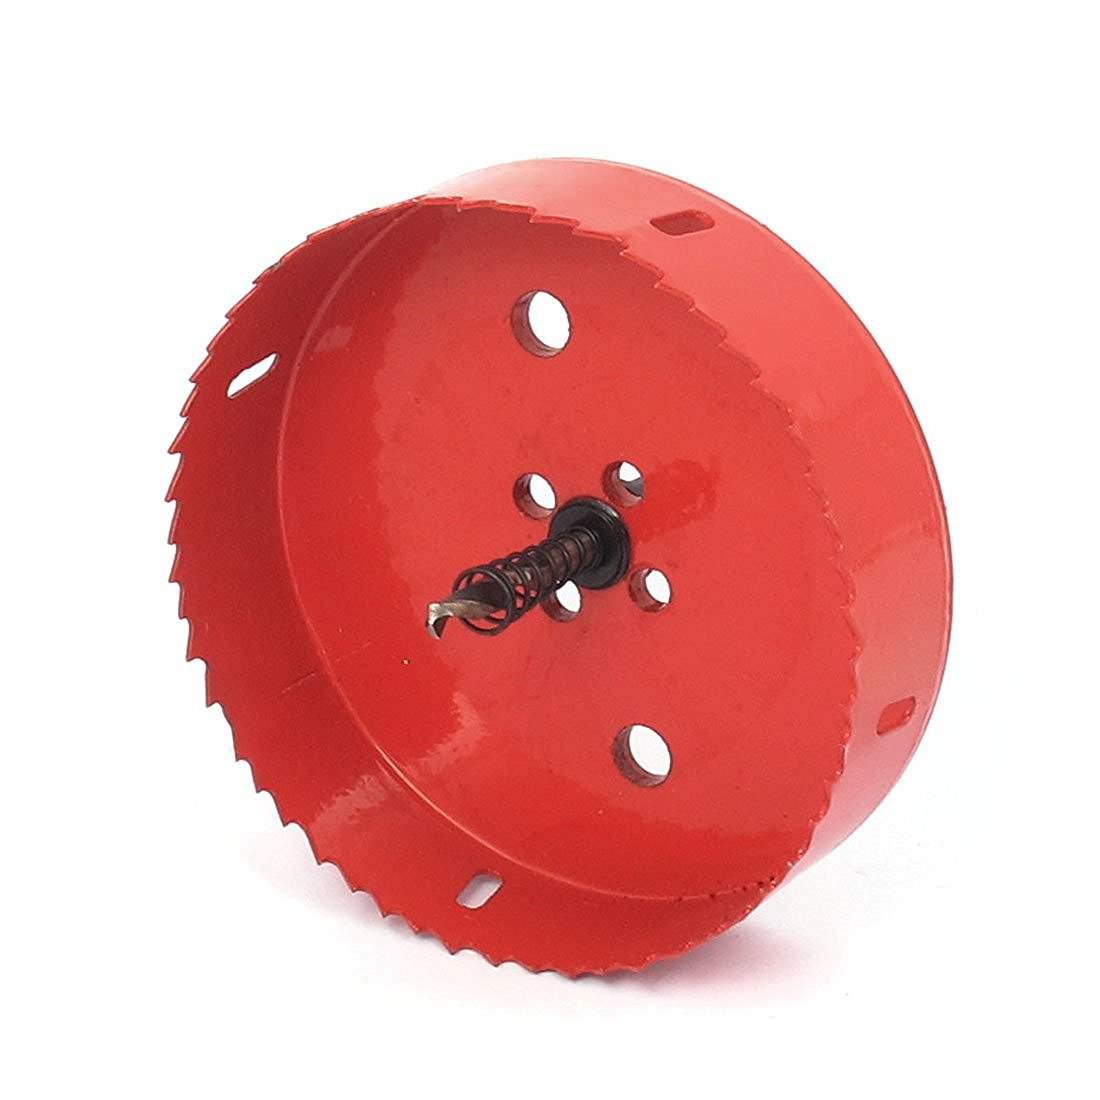 6mm Drill Bit 130mm Cutting Diameter Hole Saw Red for Drilling Wood